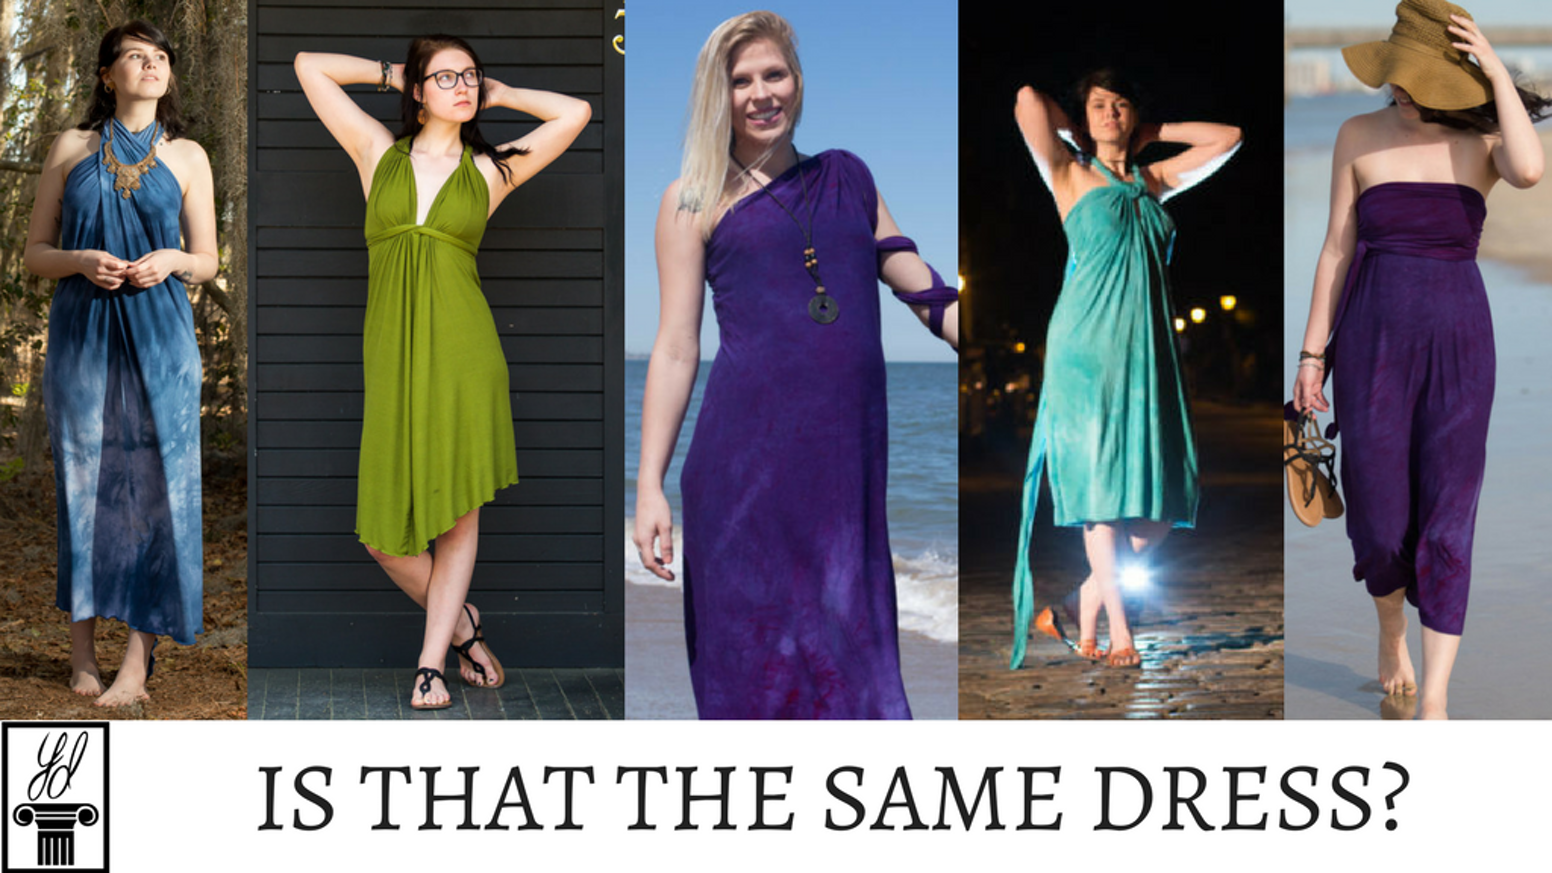 Yes, those are all the same dress. The YesDress is designed to be the most versatile and comfortable piece of clothing you'll ever own.